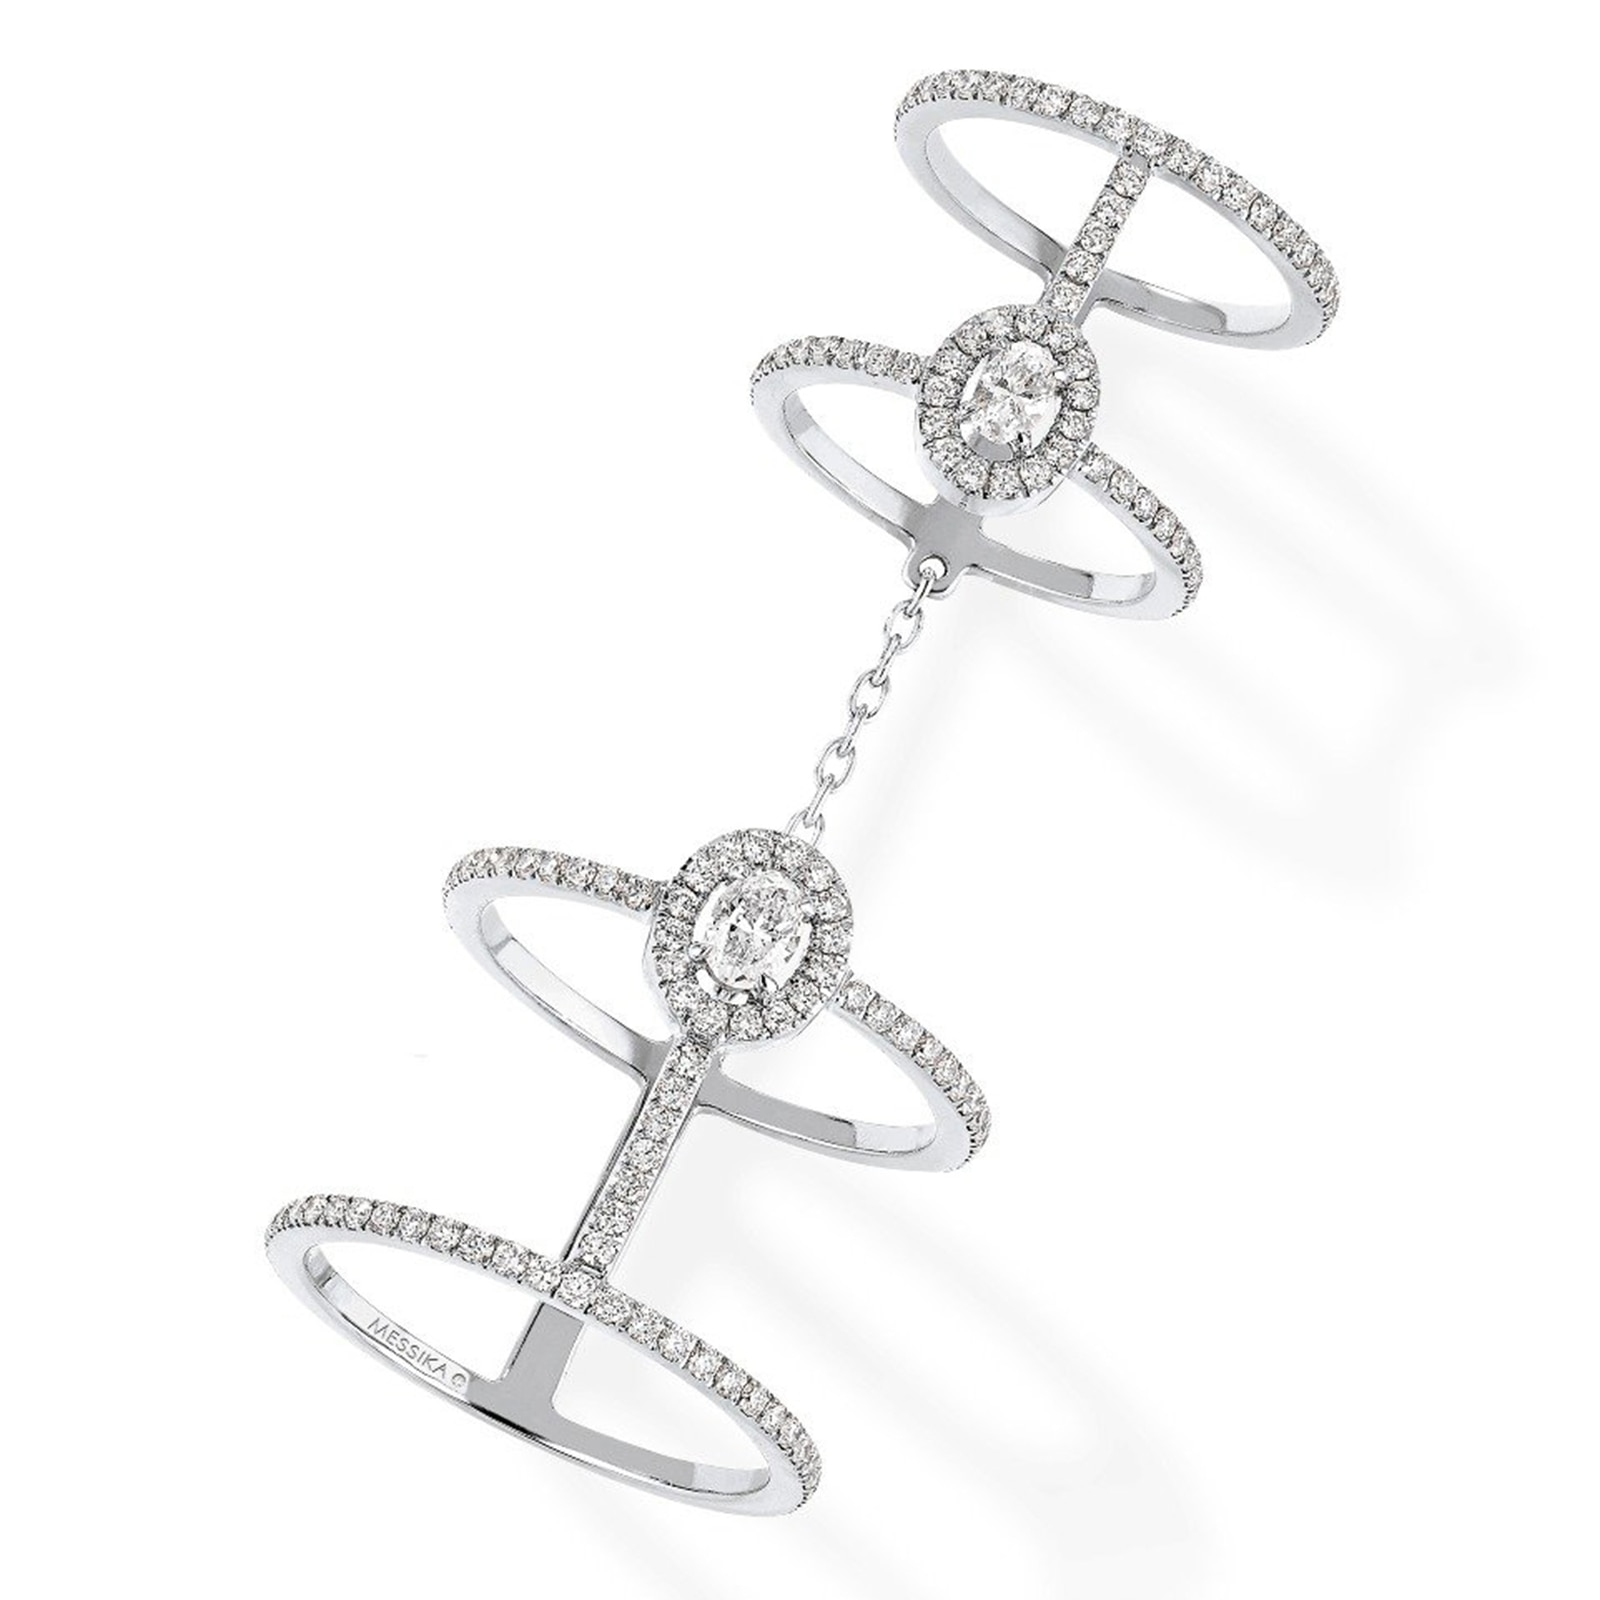 Messika Glam'Azone Double Diamond Pave Ring - Ring Size 6.5